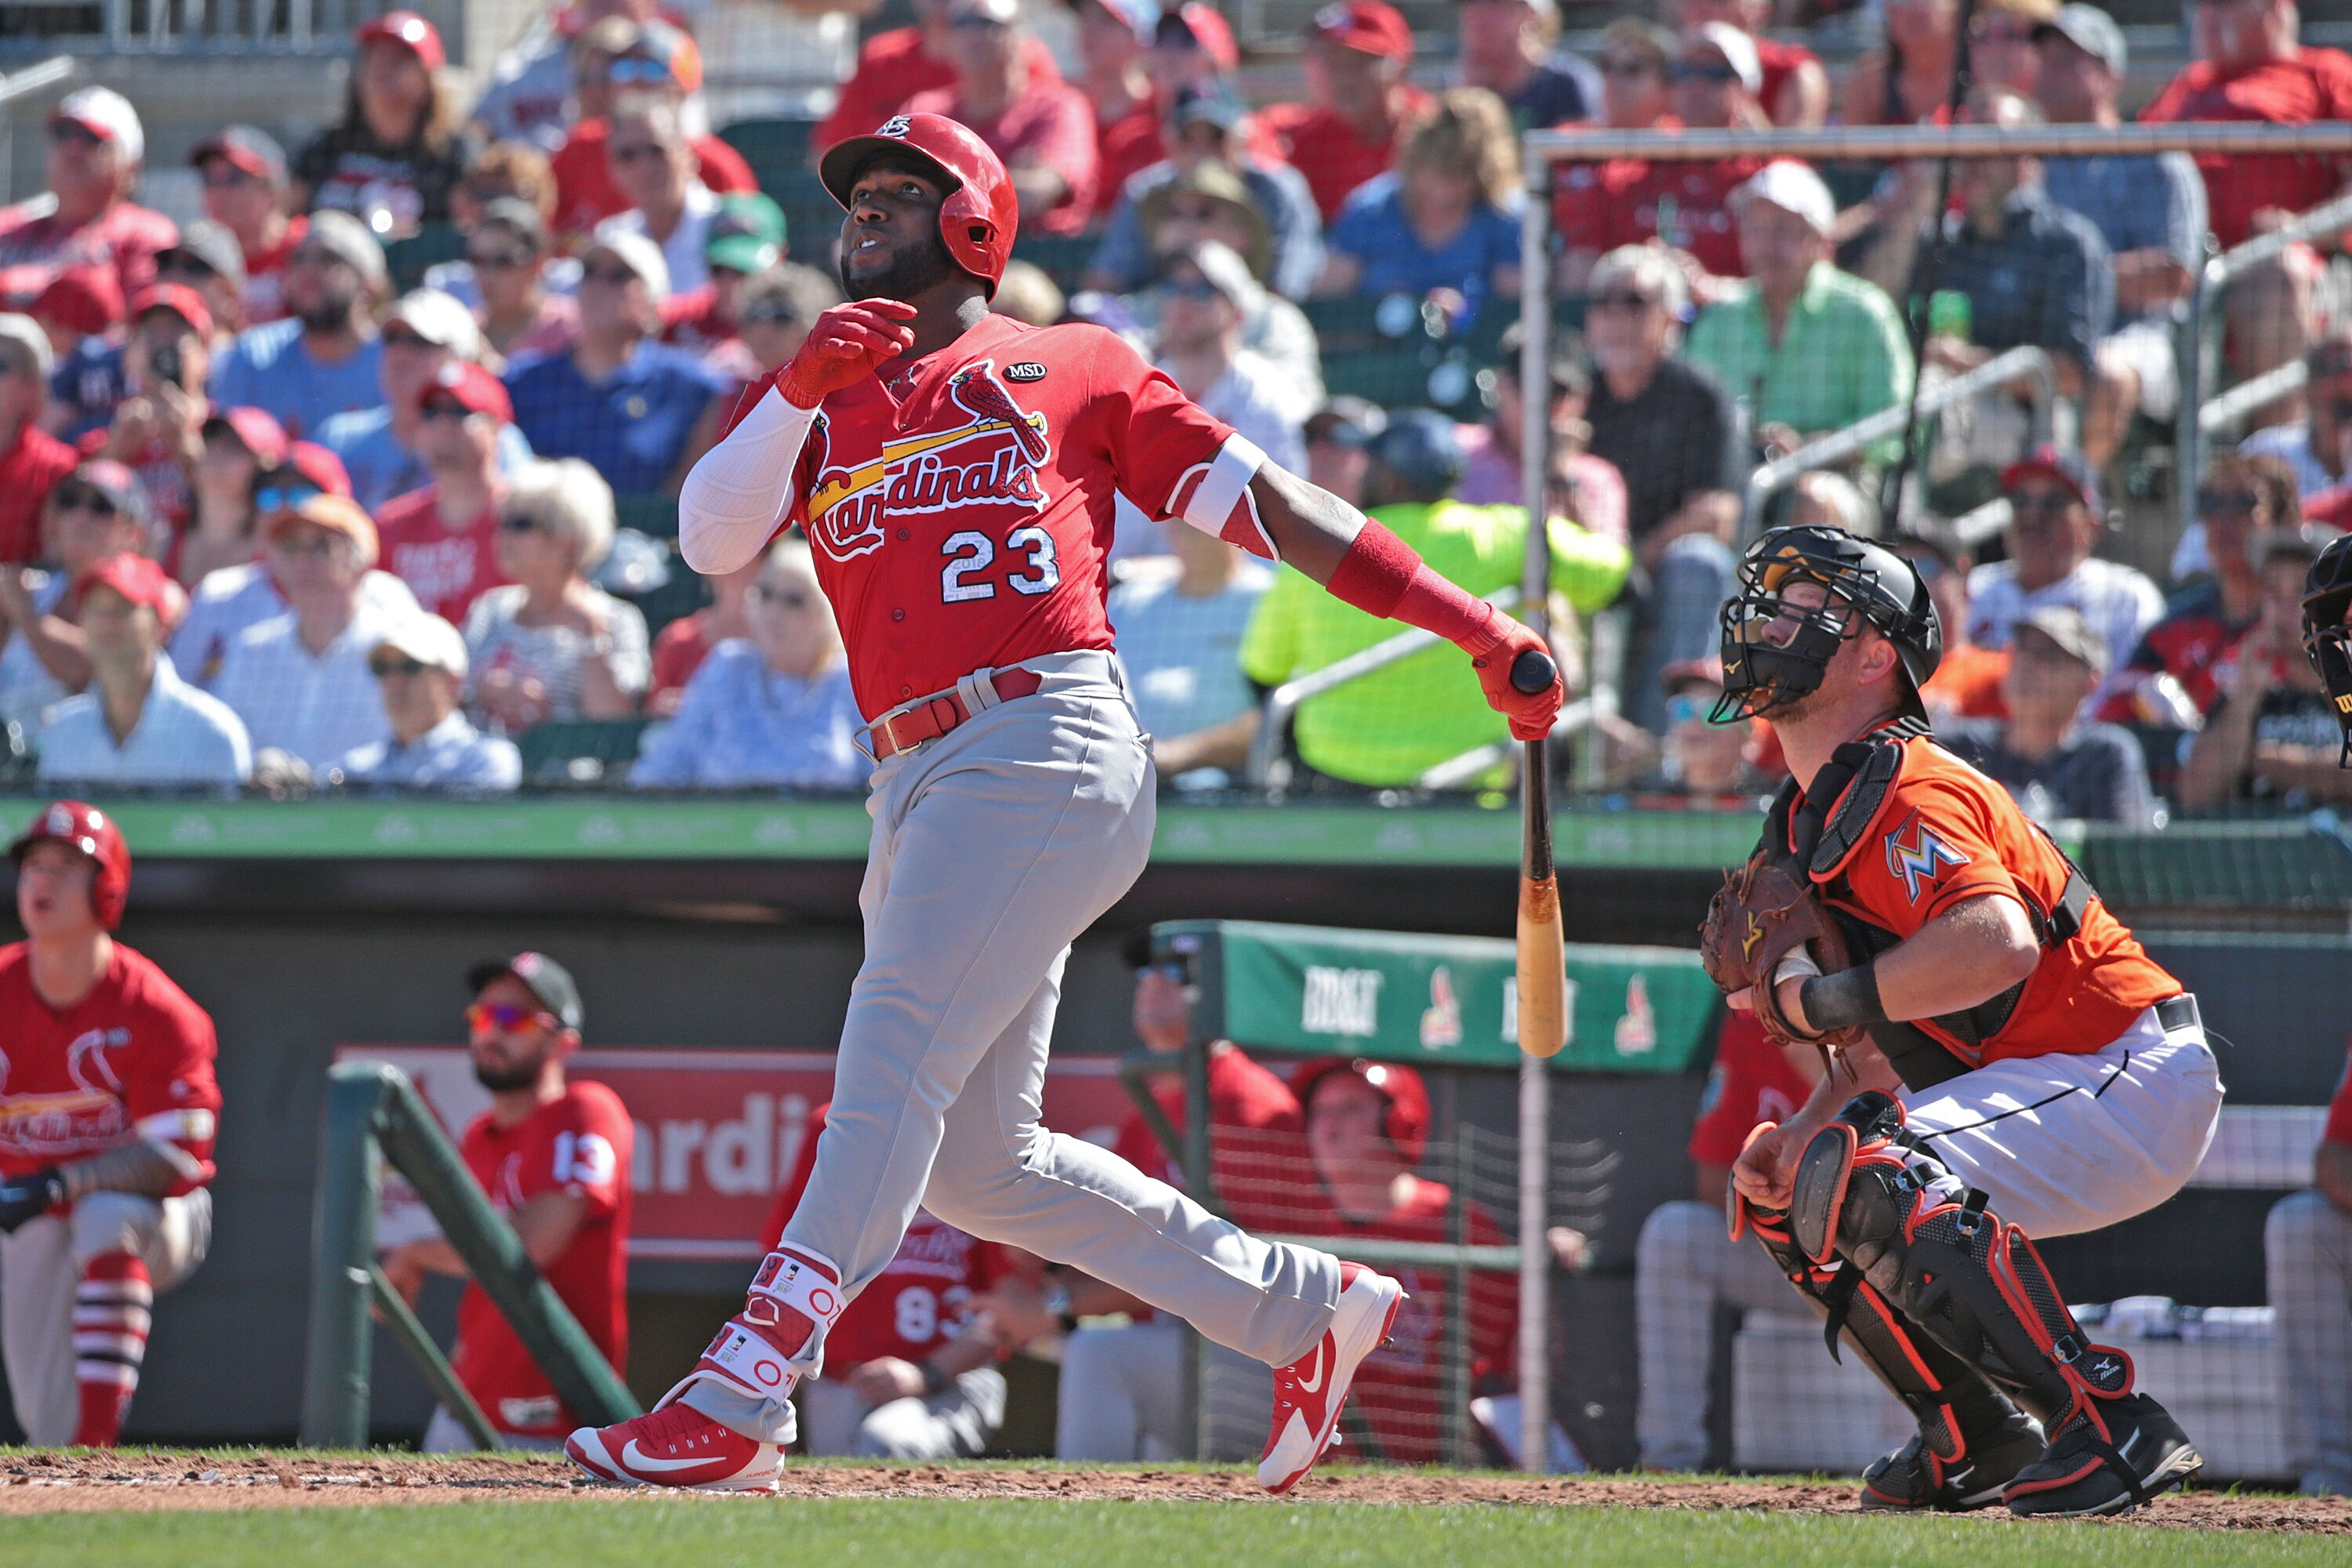 Marcell Ozuna crushes first HR with Cardinals (Video)